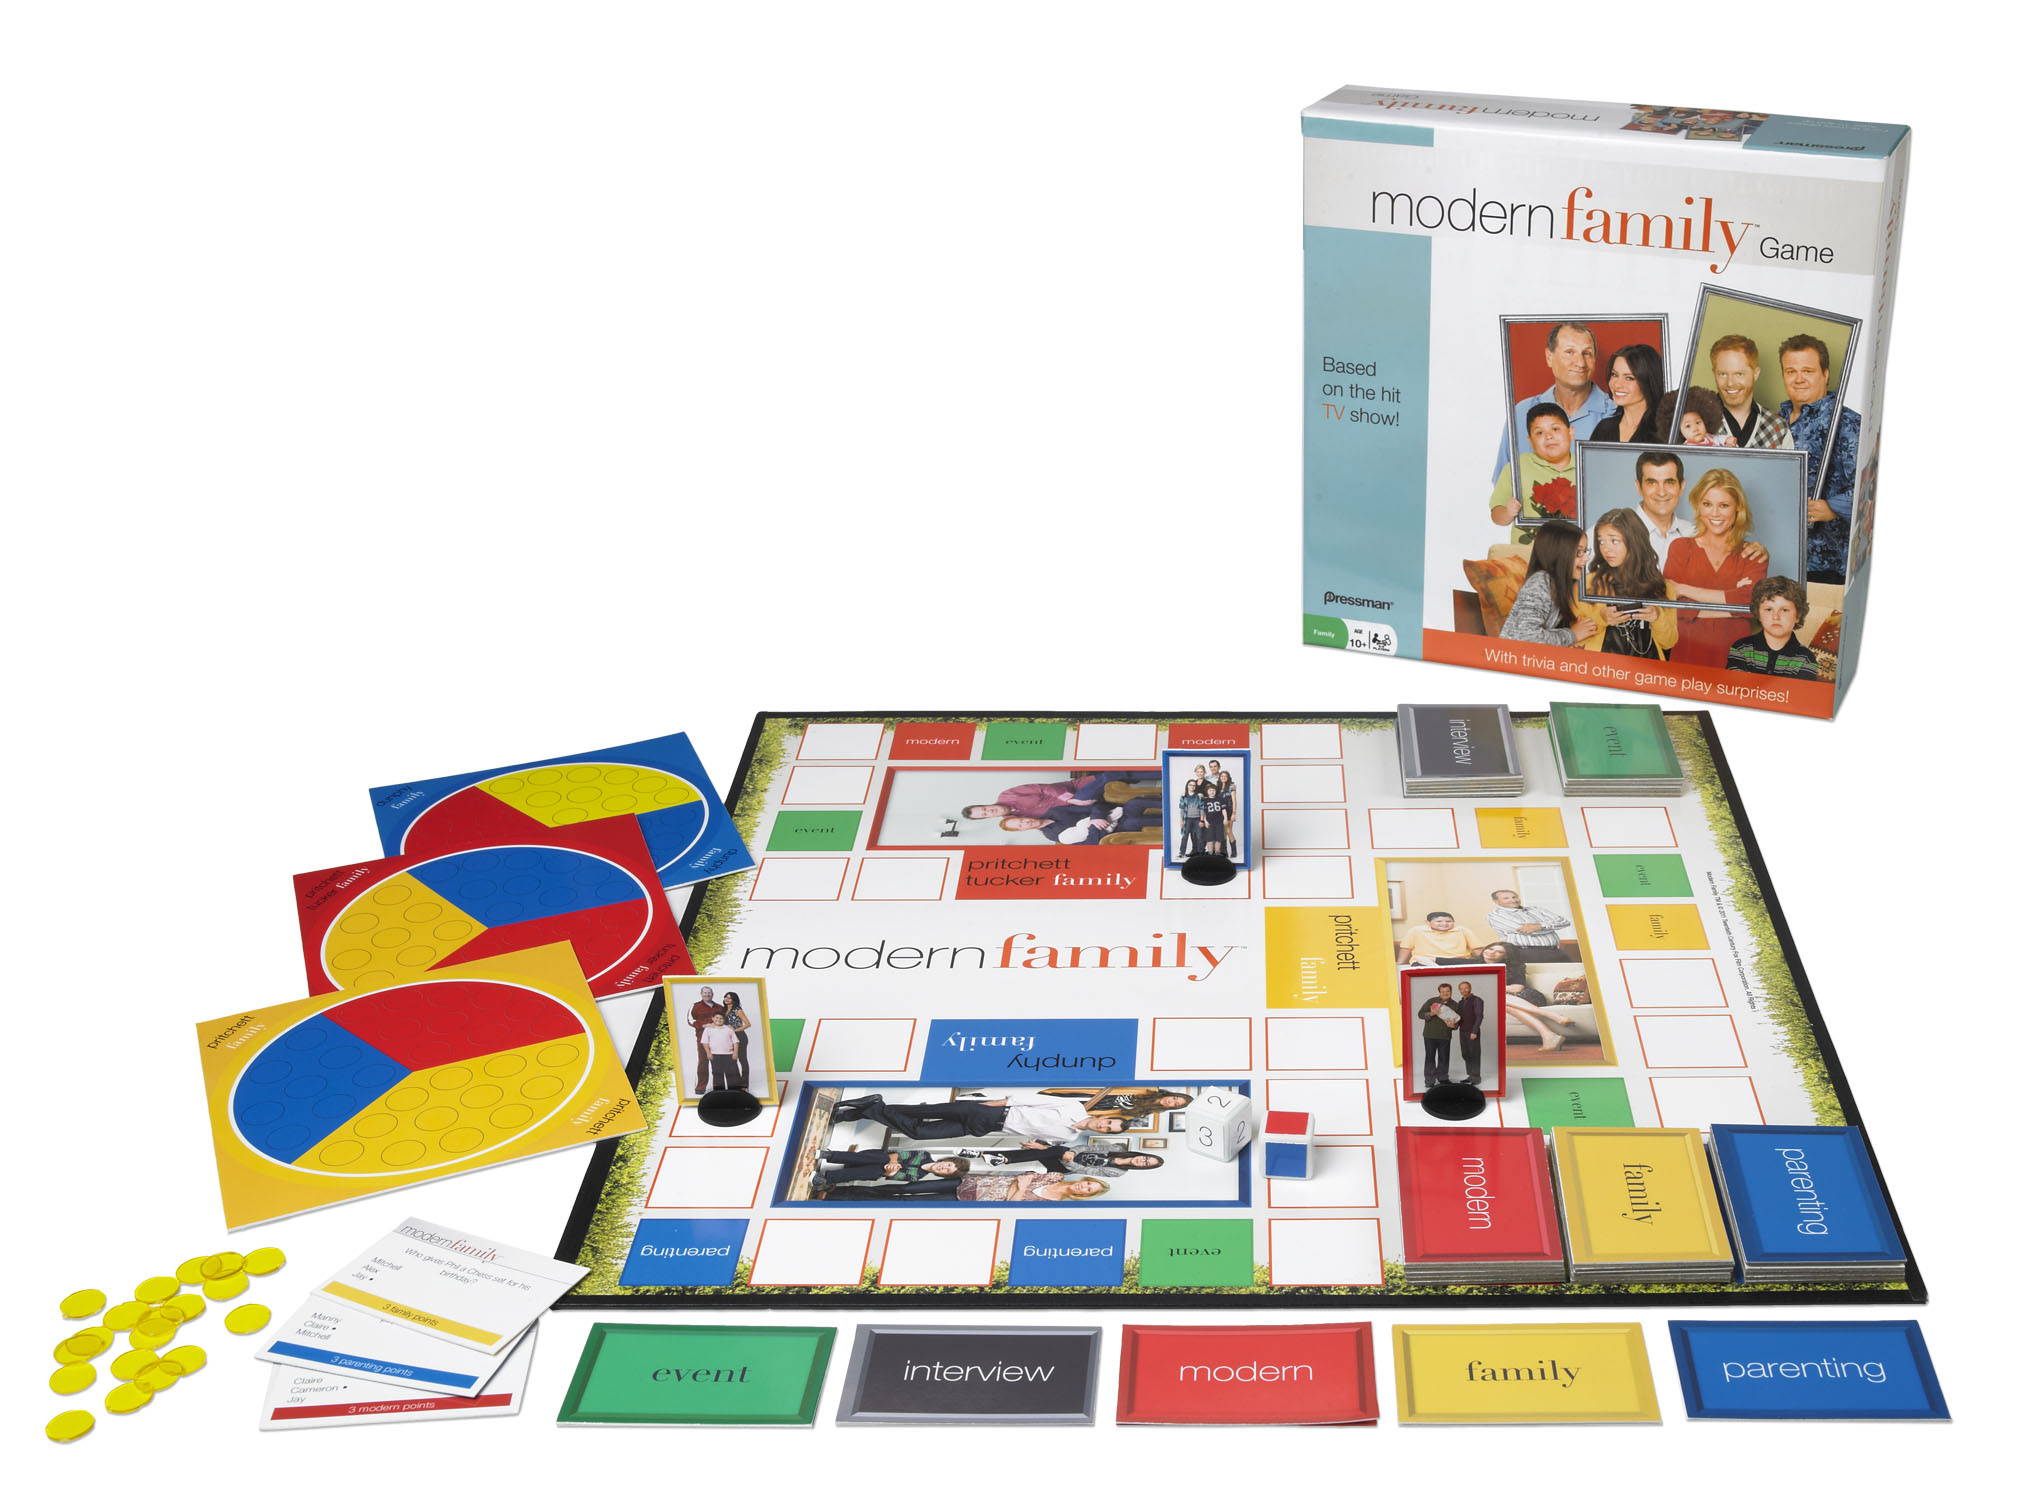 Cupid's Pulse Article: 'Modern Family' Board Game Tests Your Trivia Knowledge about the Hit Show